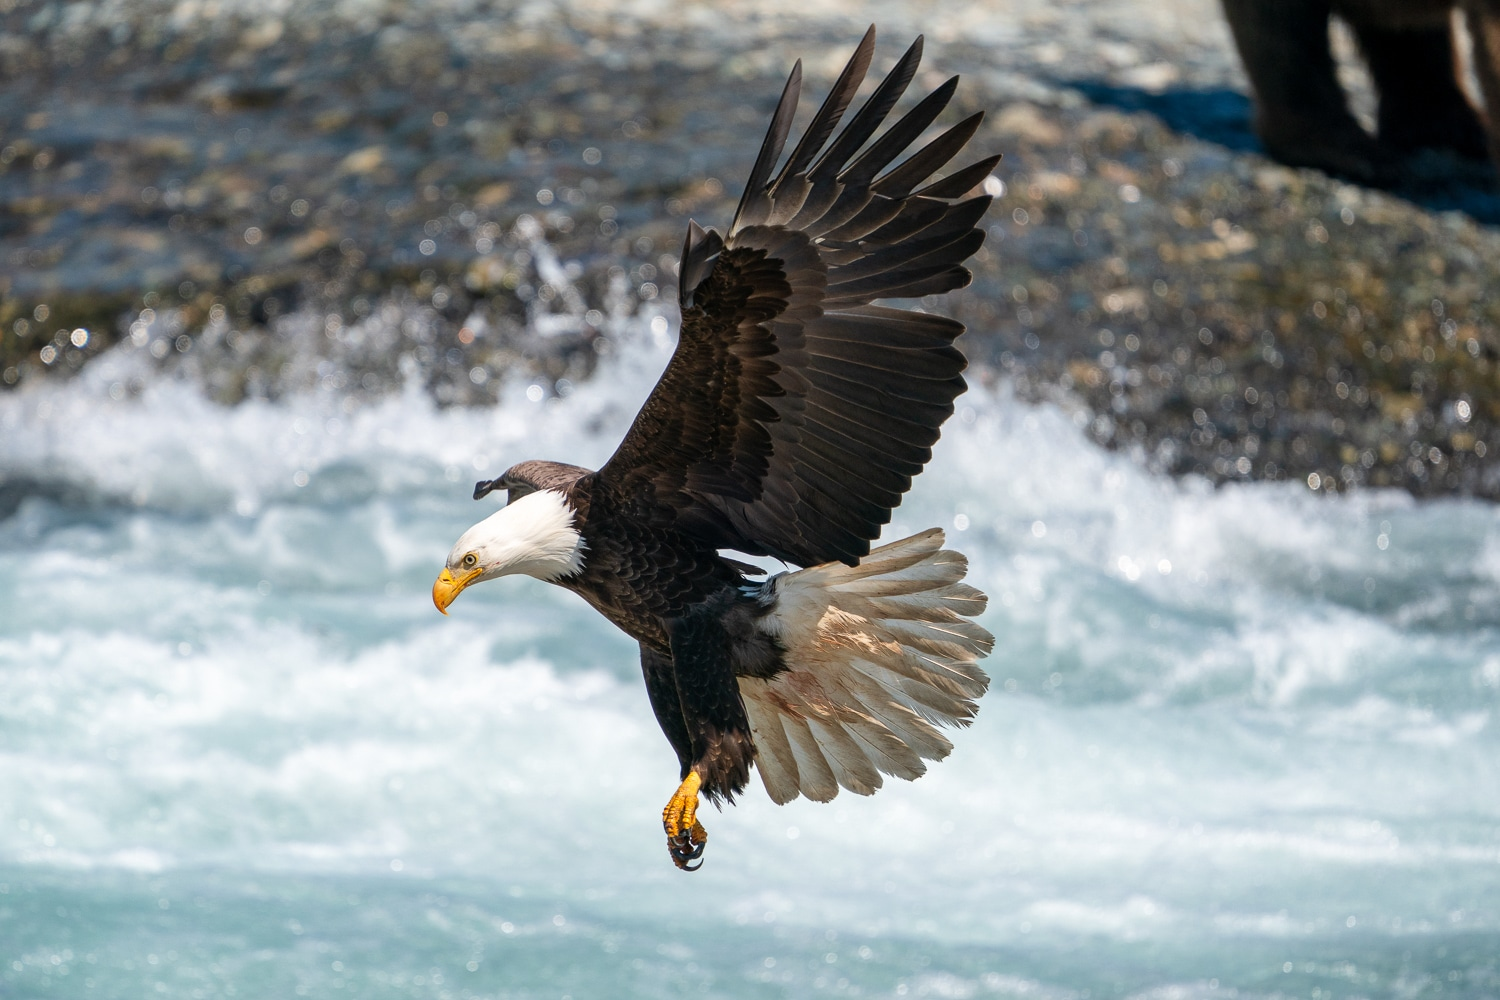 Bald Eagle in Flight Fishing at McNeil River taken with Sony a9 w/ 200-600 Lens